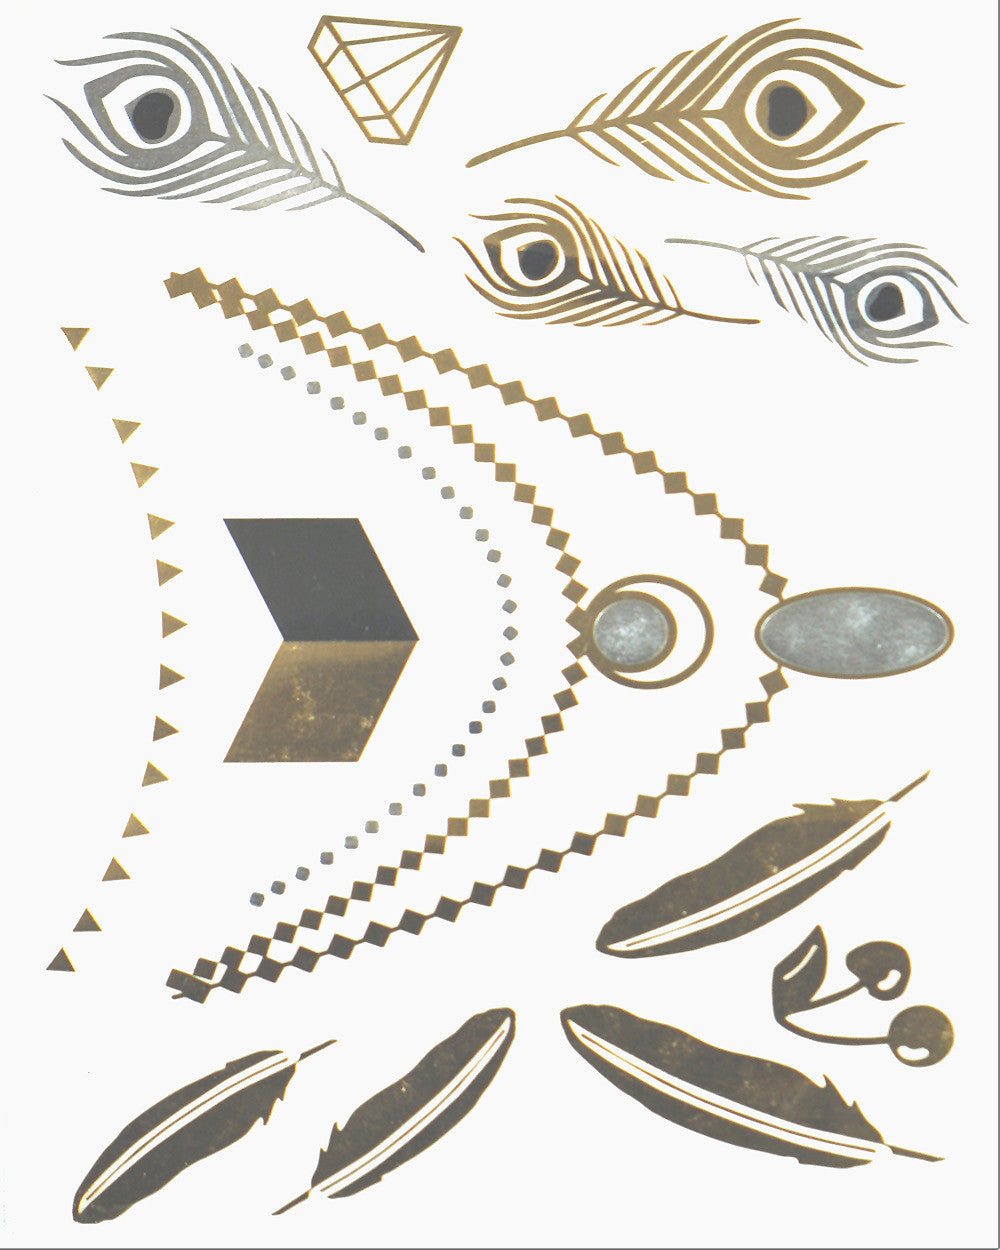 Birds of Feather Pack Metallic Flash Tattoo - Silver Trendz